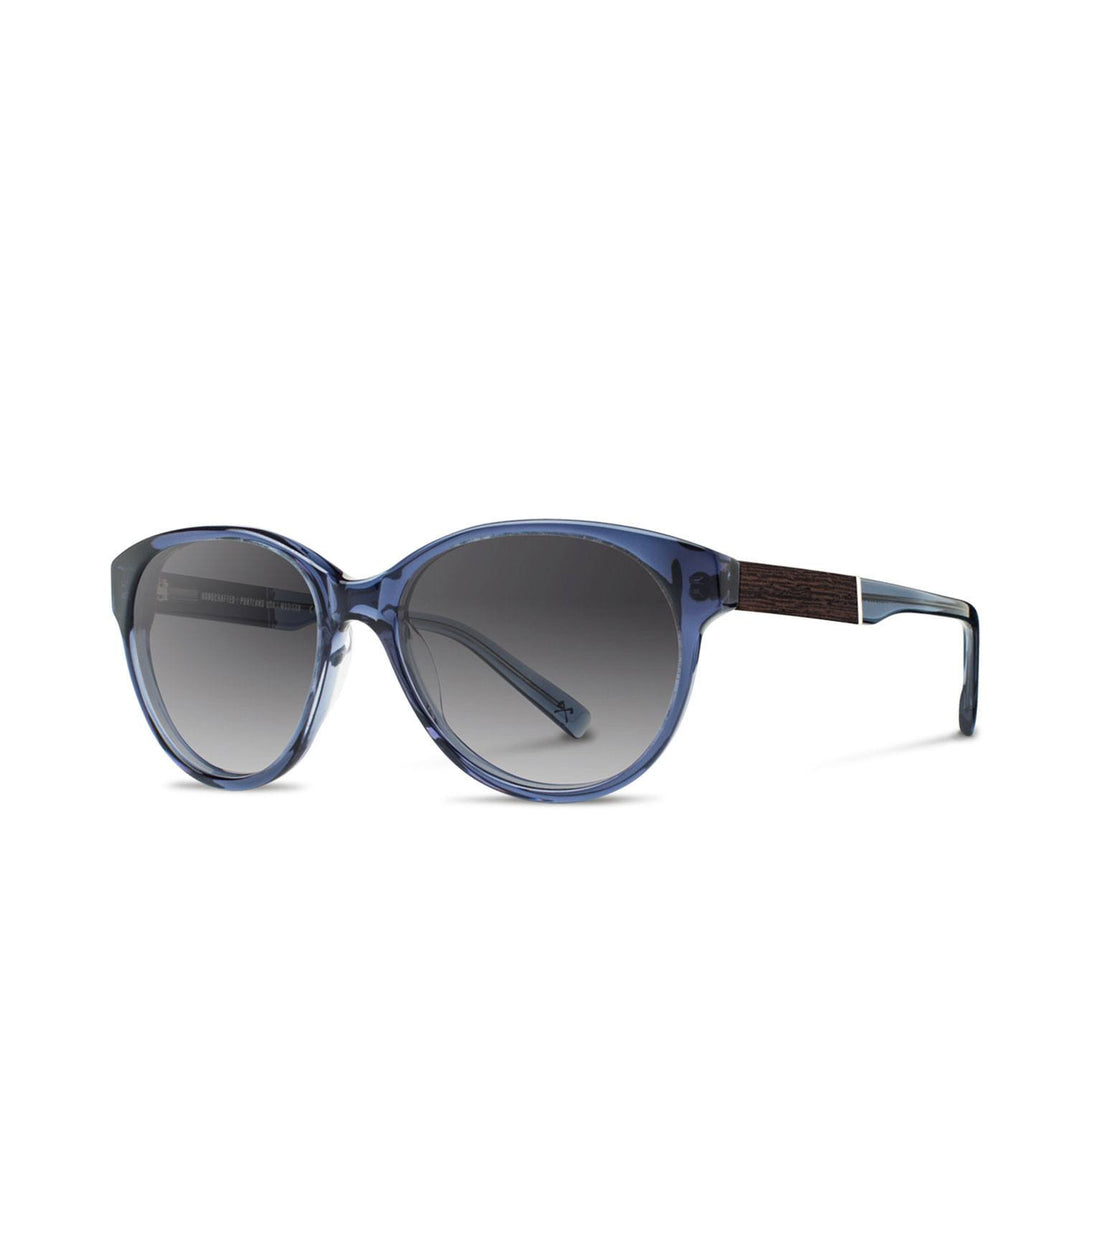 Shwood Madison - Accessories: Eyewear - Iron and Resin